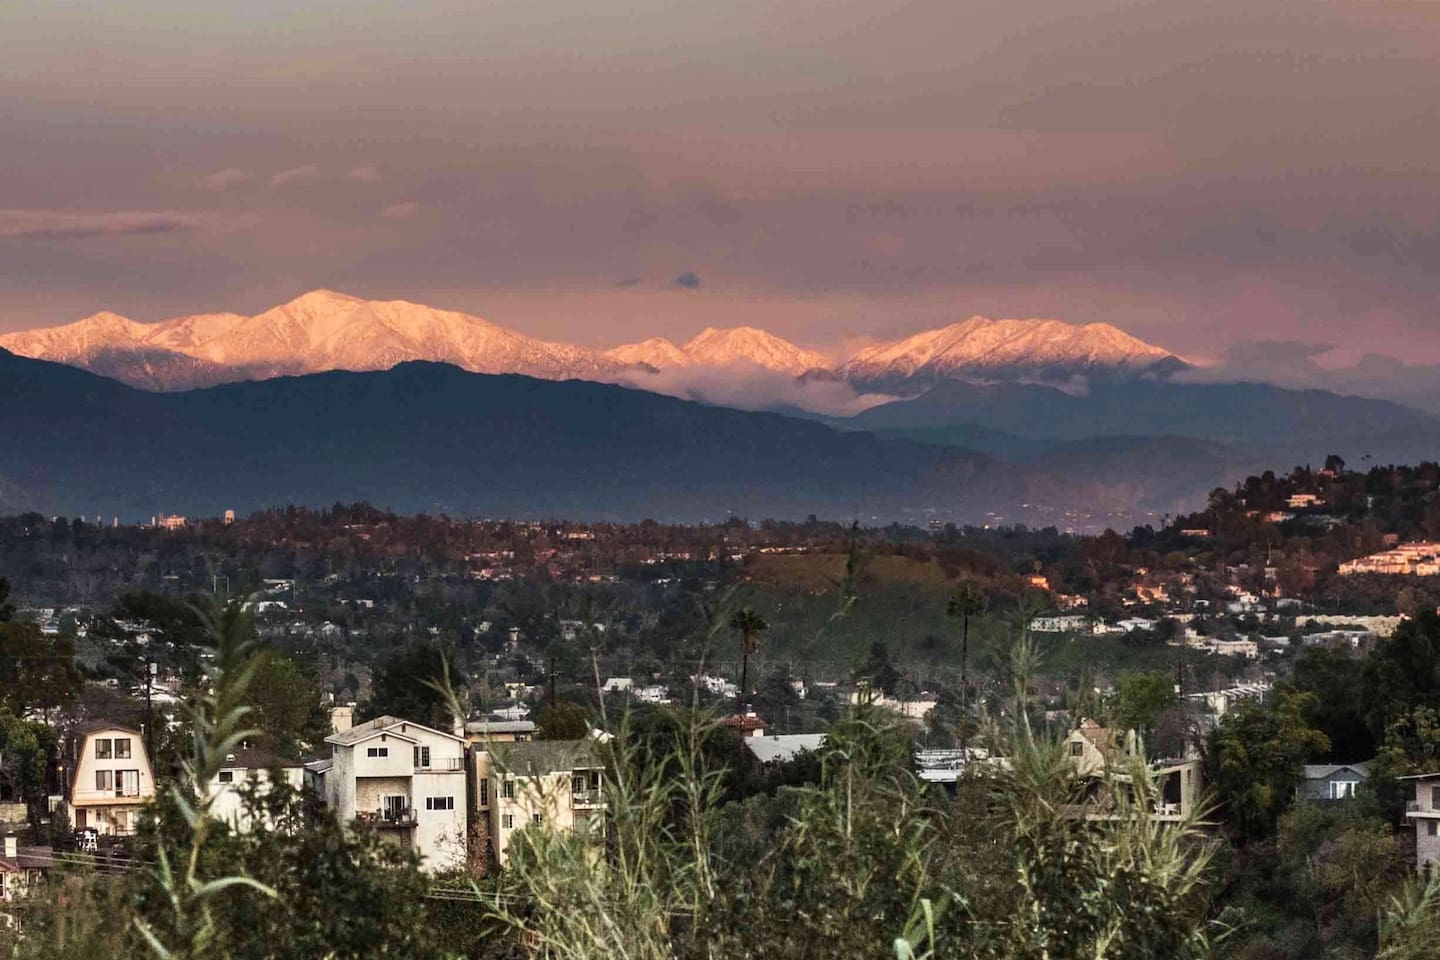 Winter sunrise on the snow-capped Mt. Baldy as seen from our backyard deck.